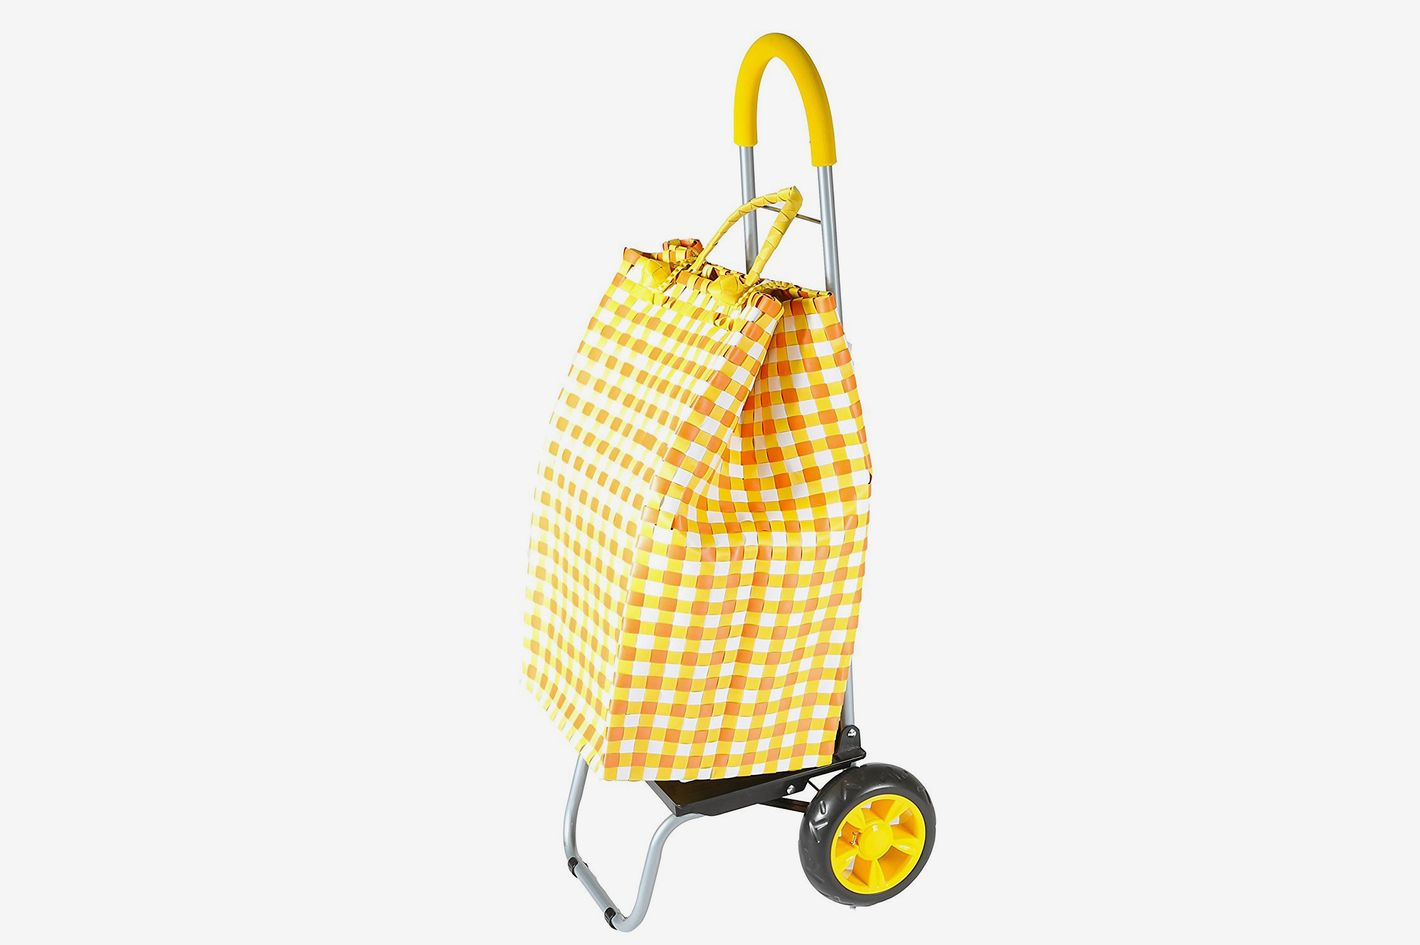 Dbest Trolley Dolly Basket Weave